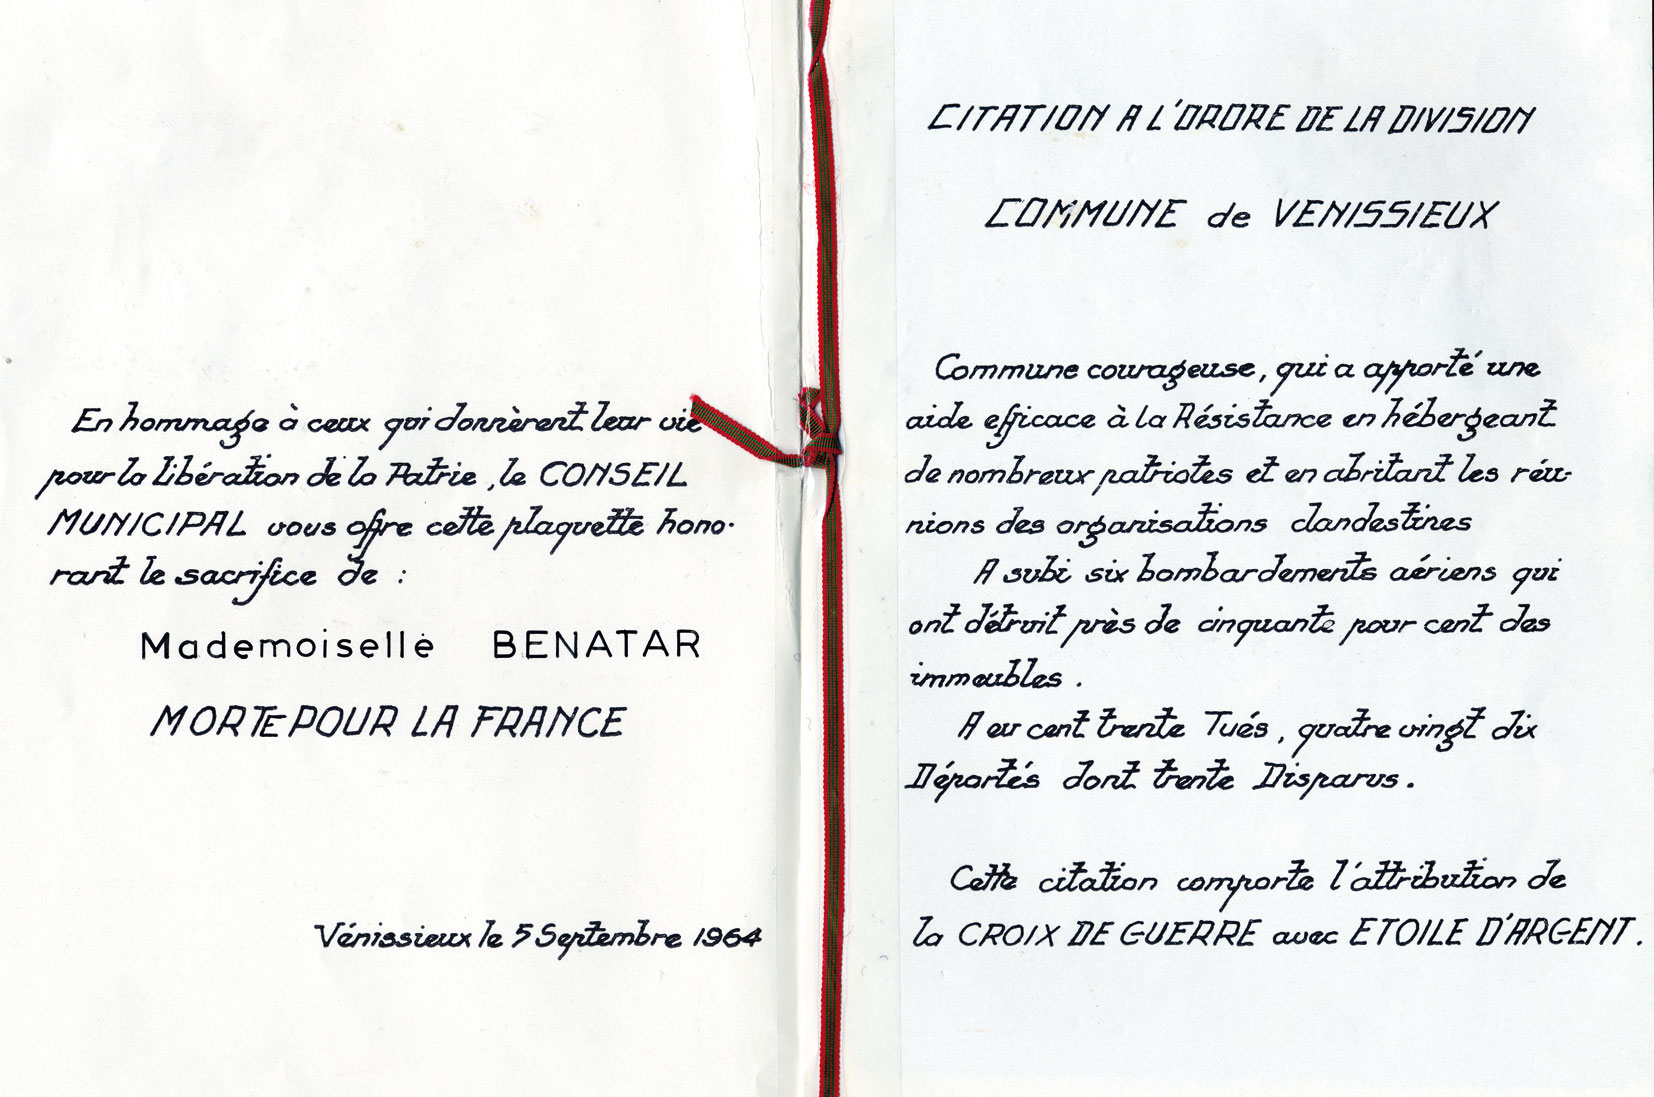 Document officiel de la commune de Vénissieux en hommage à Zahra, Benatar, Saint-Fons